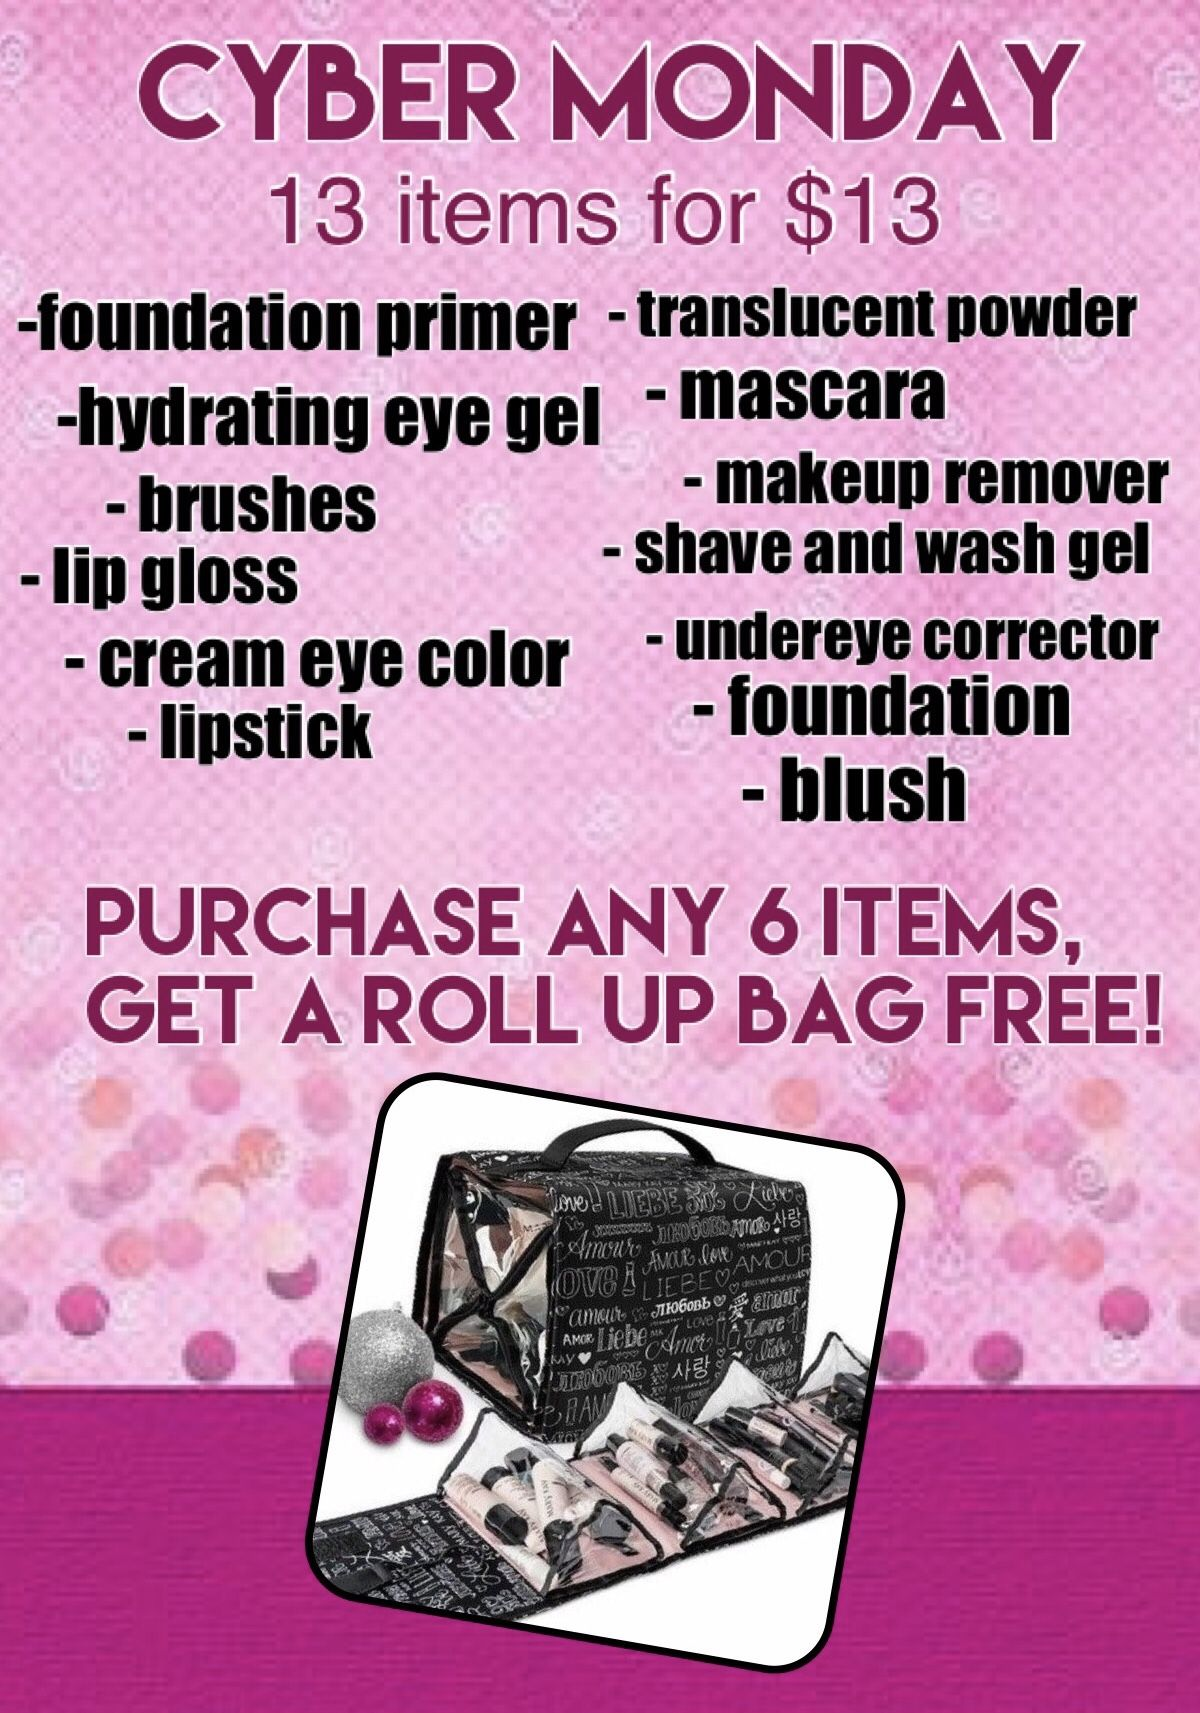 Mary Kay Cyber Monday Marykay Cybermonday 13itemsfor13dollars Mymklife Mkdeals Marykaymakeup Mary Kay Cyber Monday Mary Kay Mascara Mary Kay Pink Friday